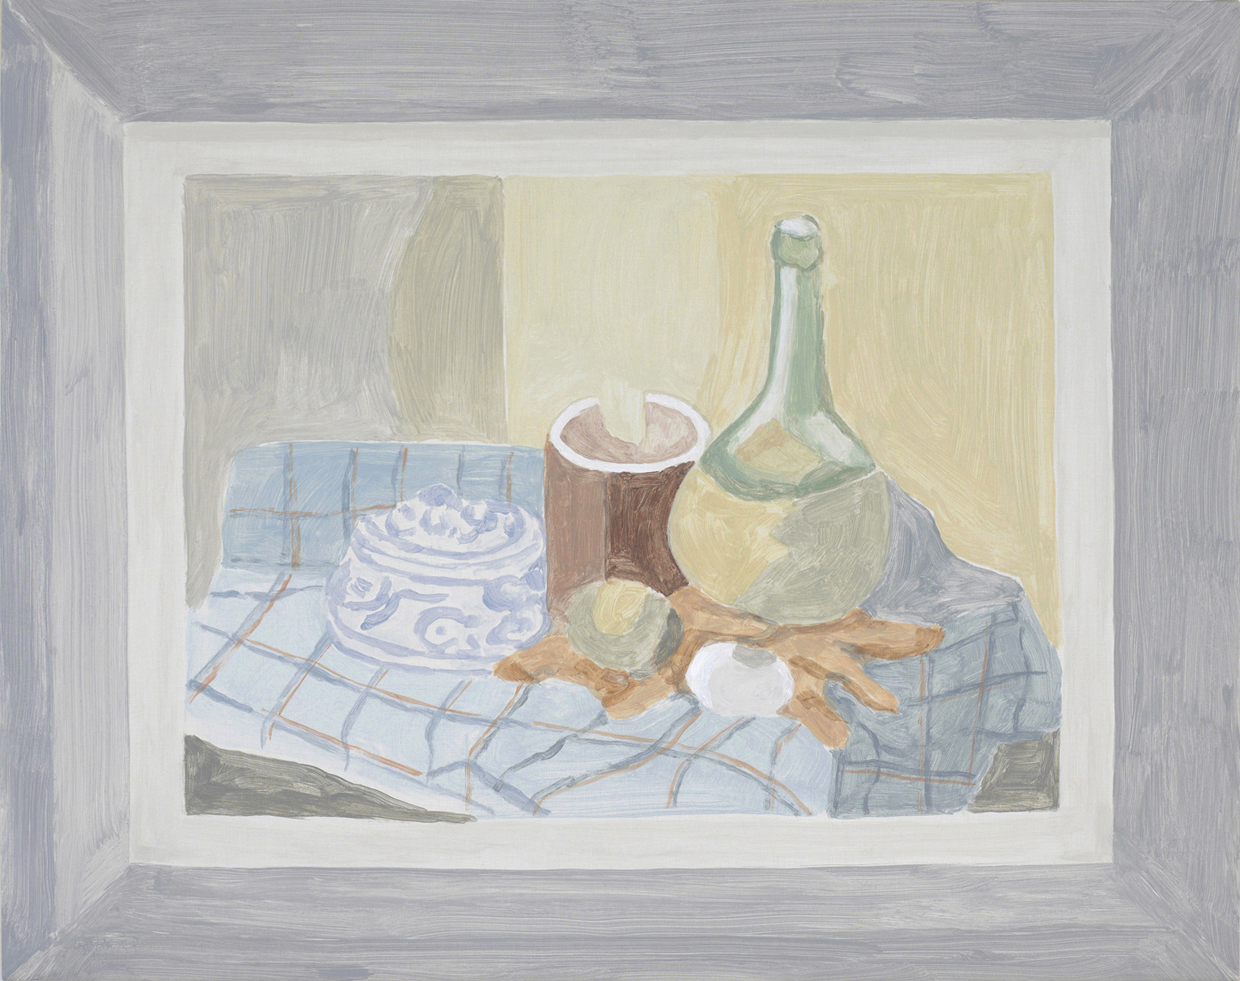 Framed Painting: Still Life with Bottle, acrylic on canvas over board, 18.5 x 23.5, 2013.   X2016.10,  Permanent.Collection, 2016.  Paintings of Paintings , Talley Dunn Gallery, 2012.